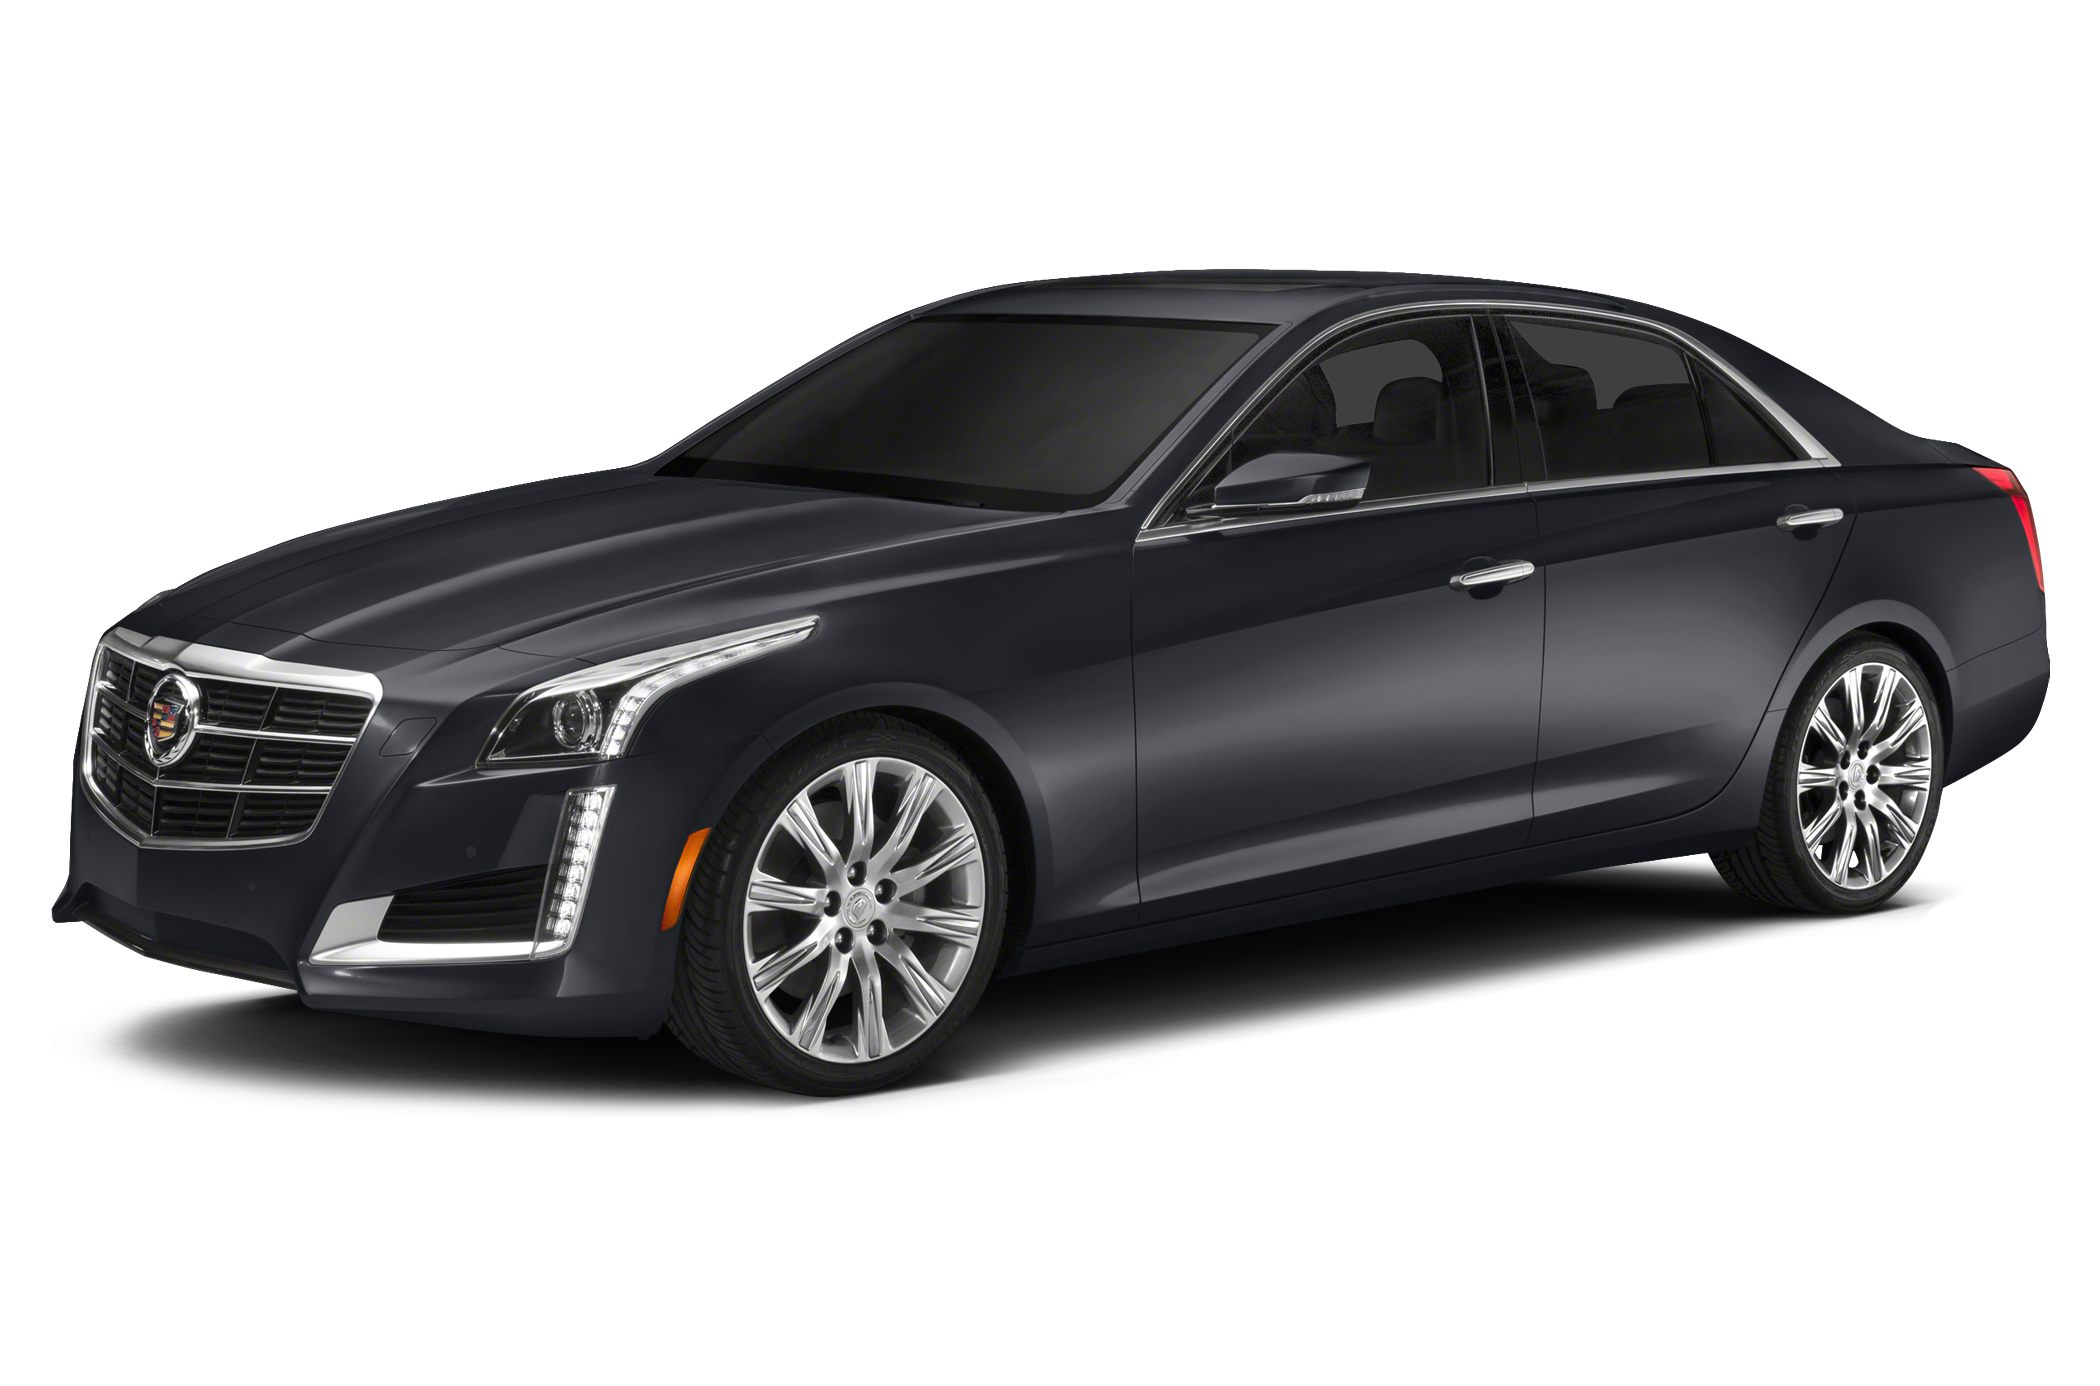 cadillac cts images #6